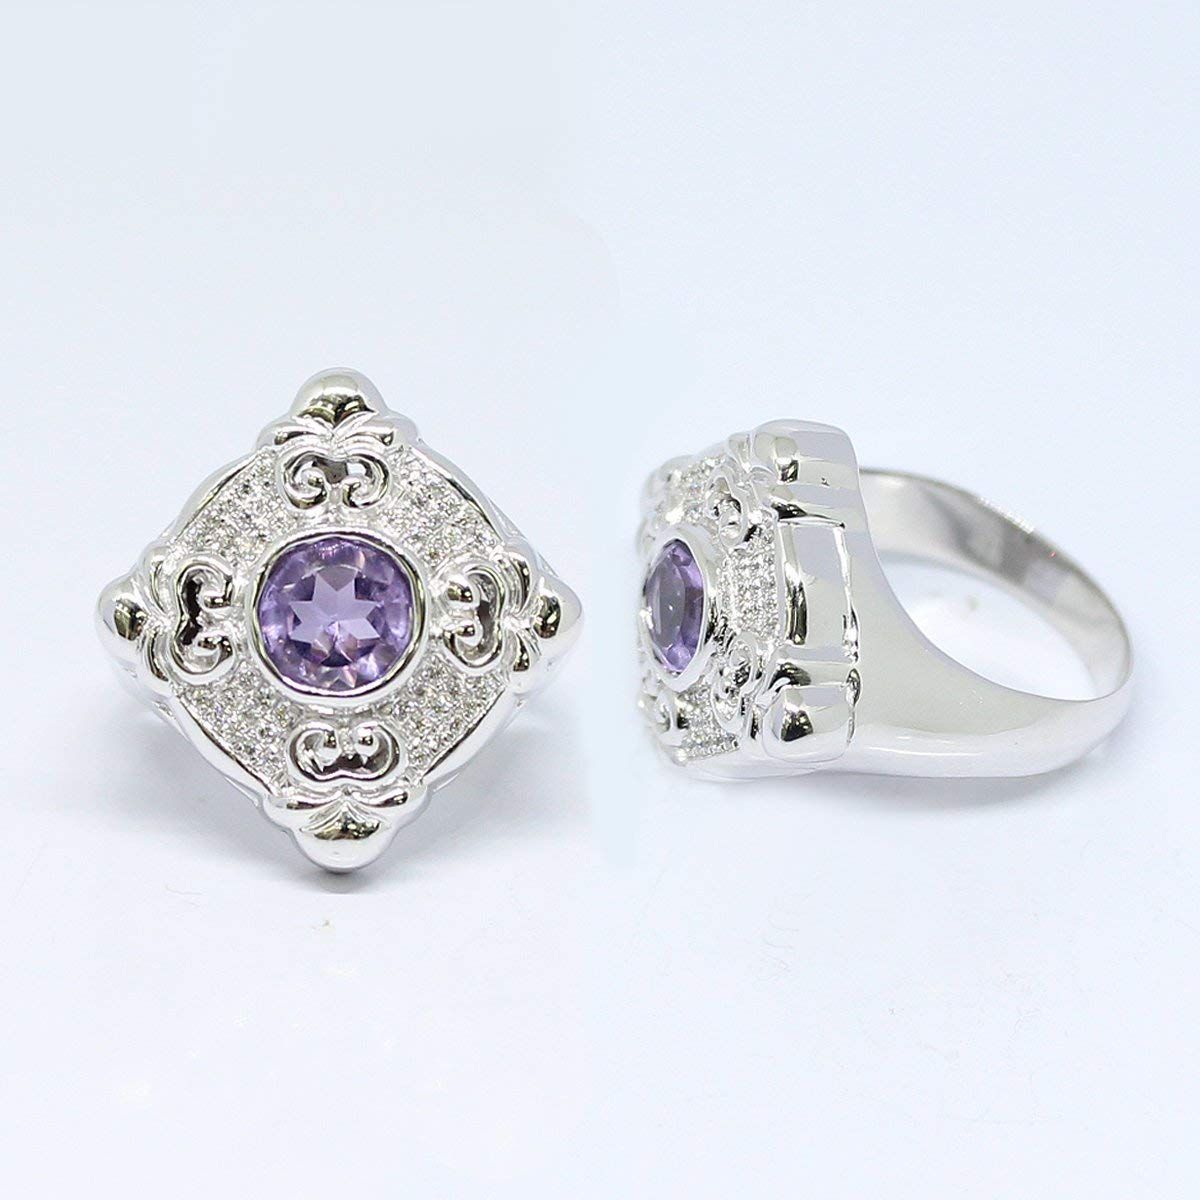 Bali Handmade sterling silver ring with genuine 6 * 6 mm amethyst stone and shiny white CZ, micro setting, perfect round-shape amethyst stone, silver ring with natural amethyst stone